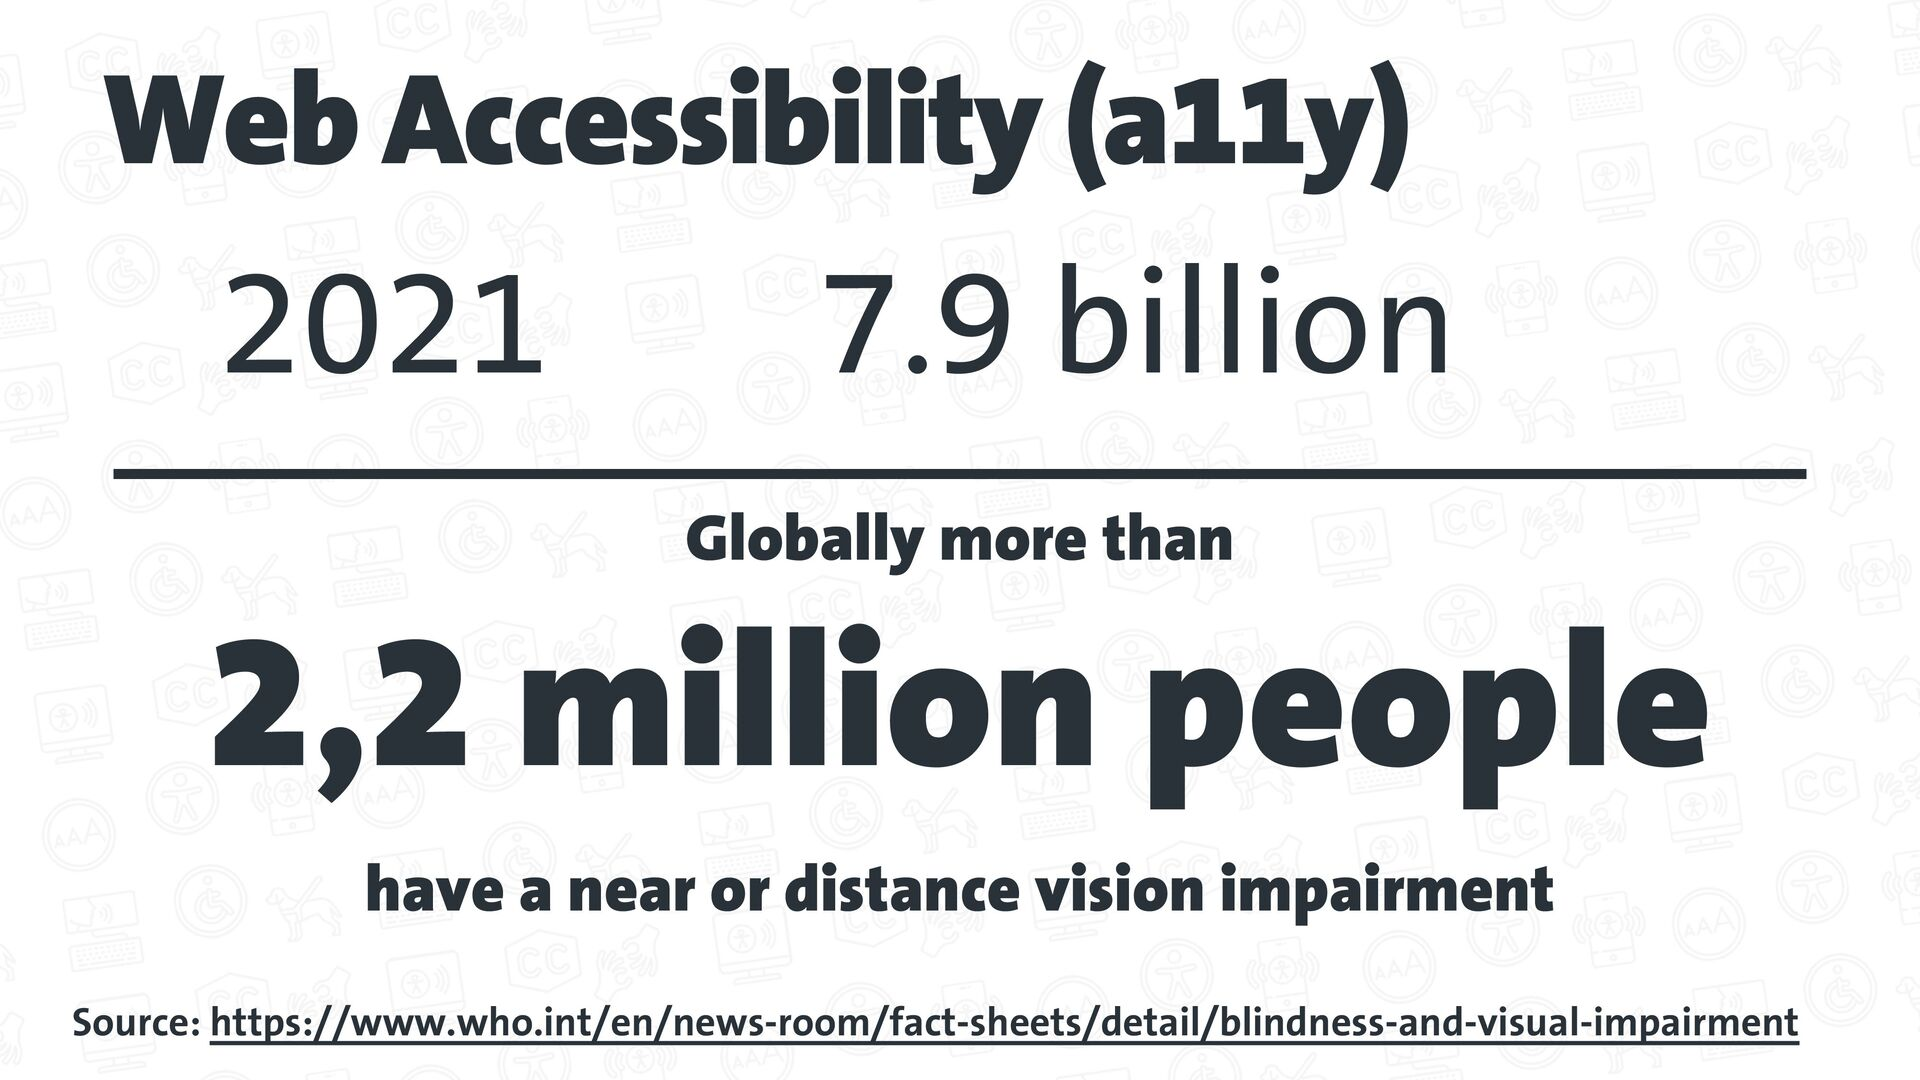 Developing Web Accessibility